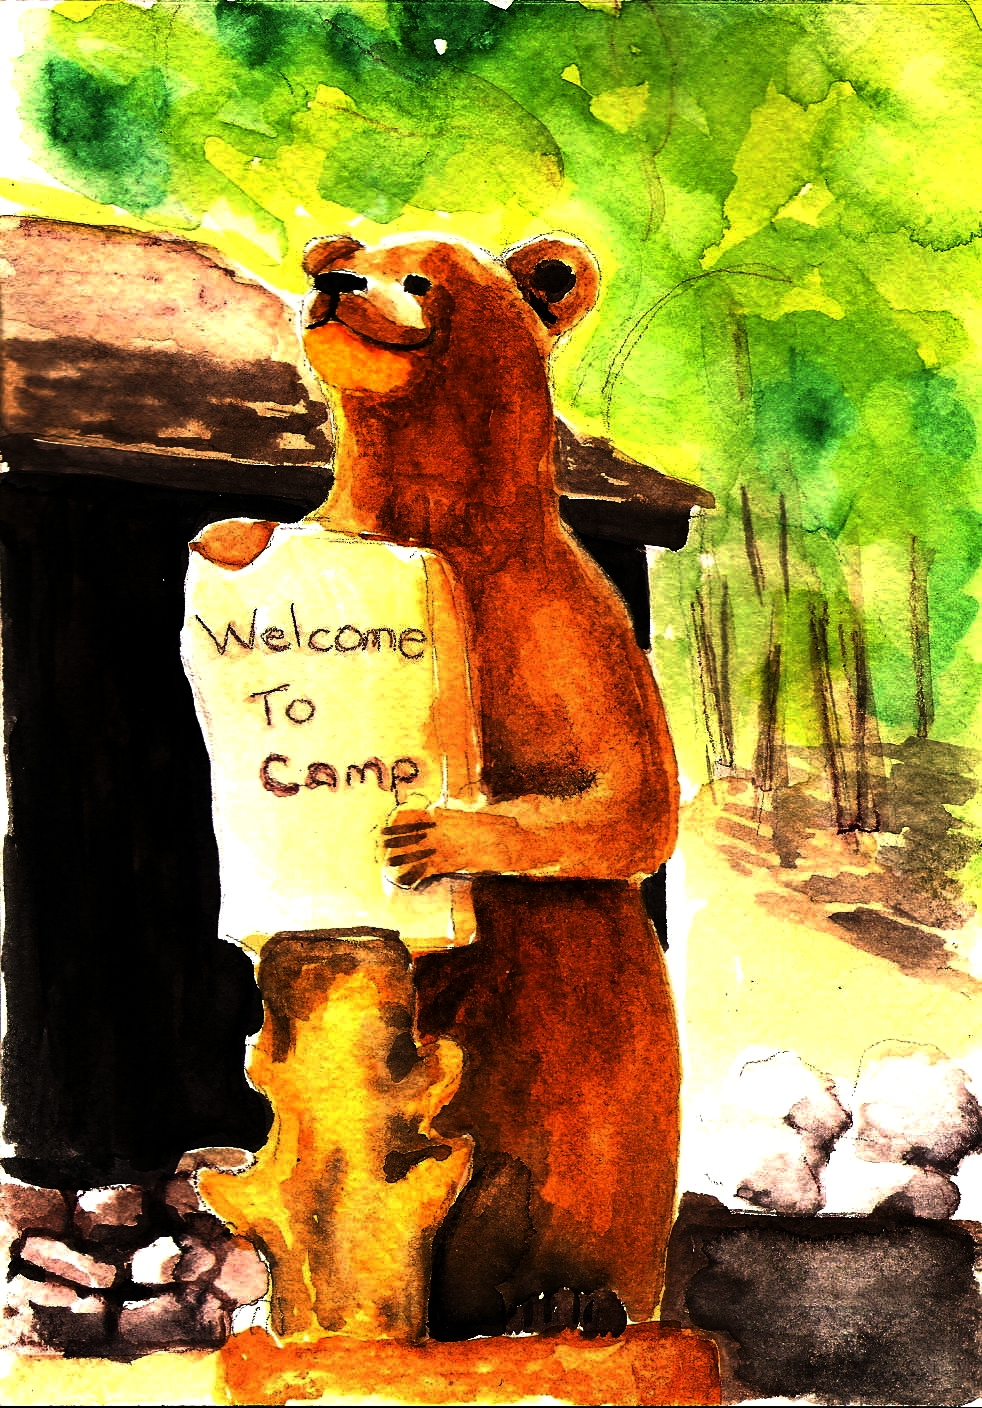 4 CARD NOTECARD SET - CAMP DE BENNEVILLE PINESAvailable at Camp Store